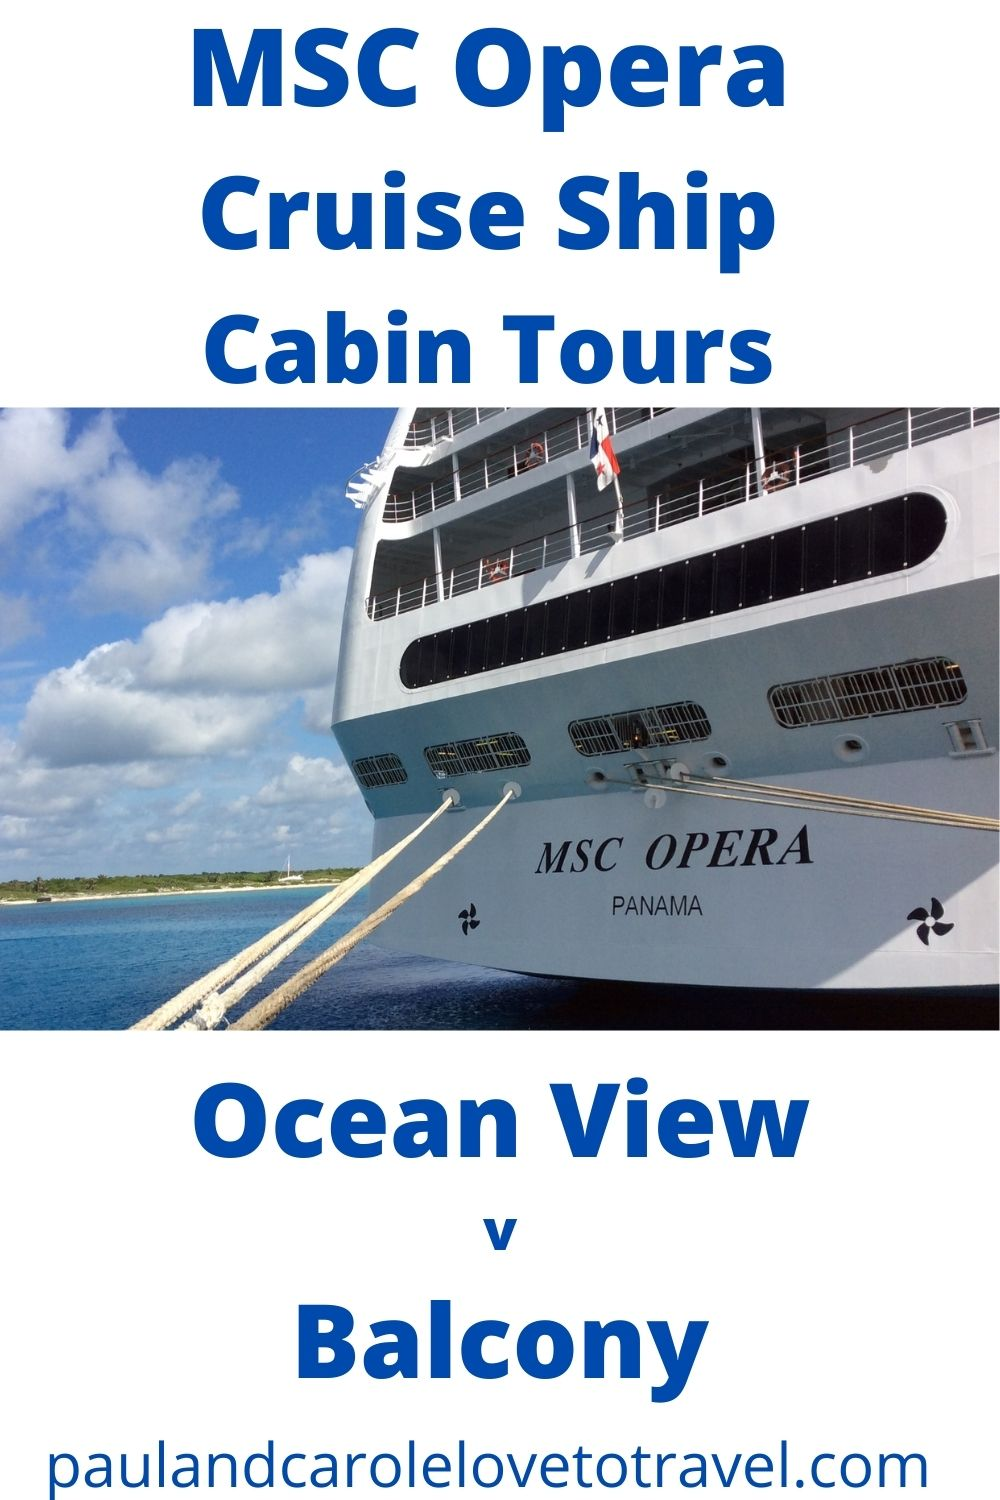 msc opera cruise ship cabins balcony versus Oceanview